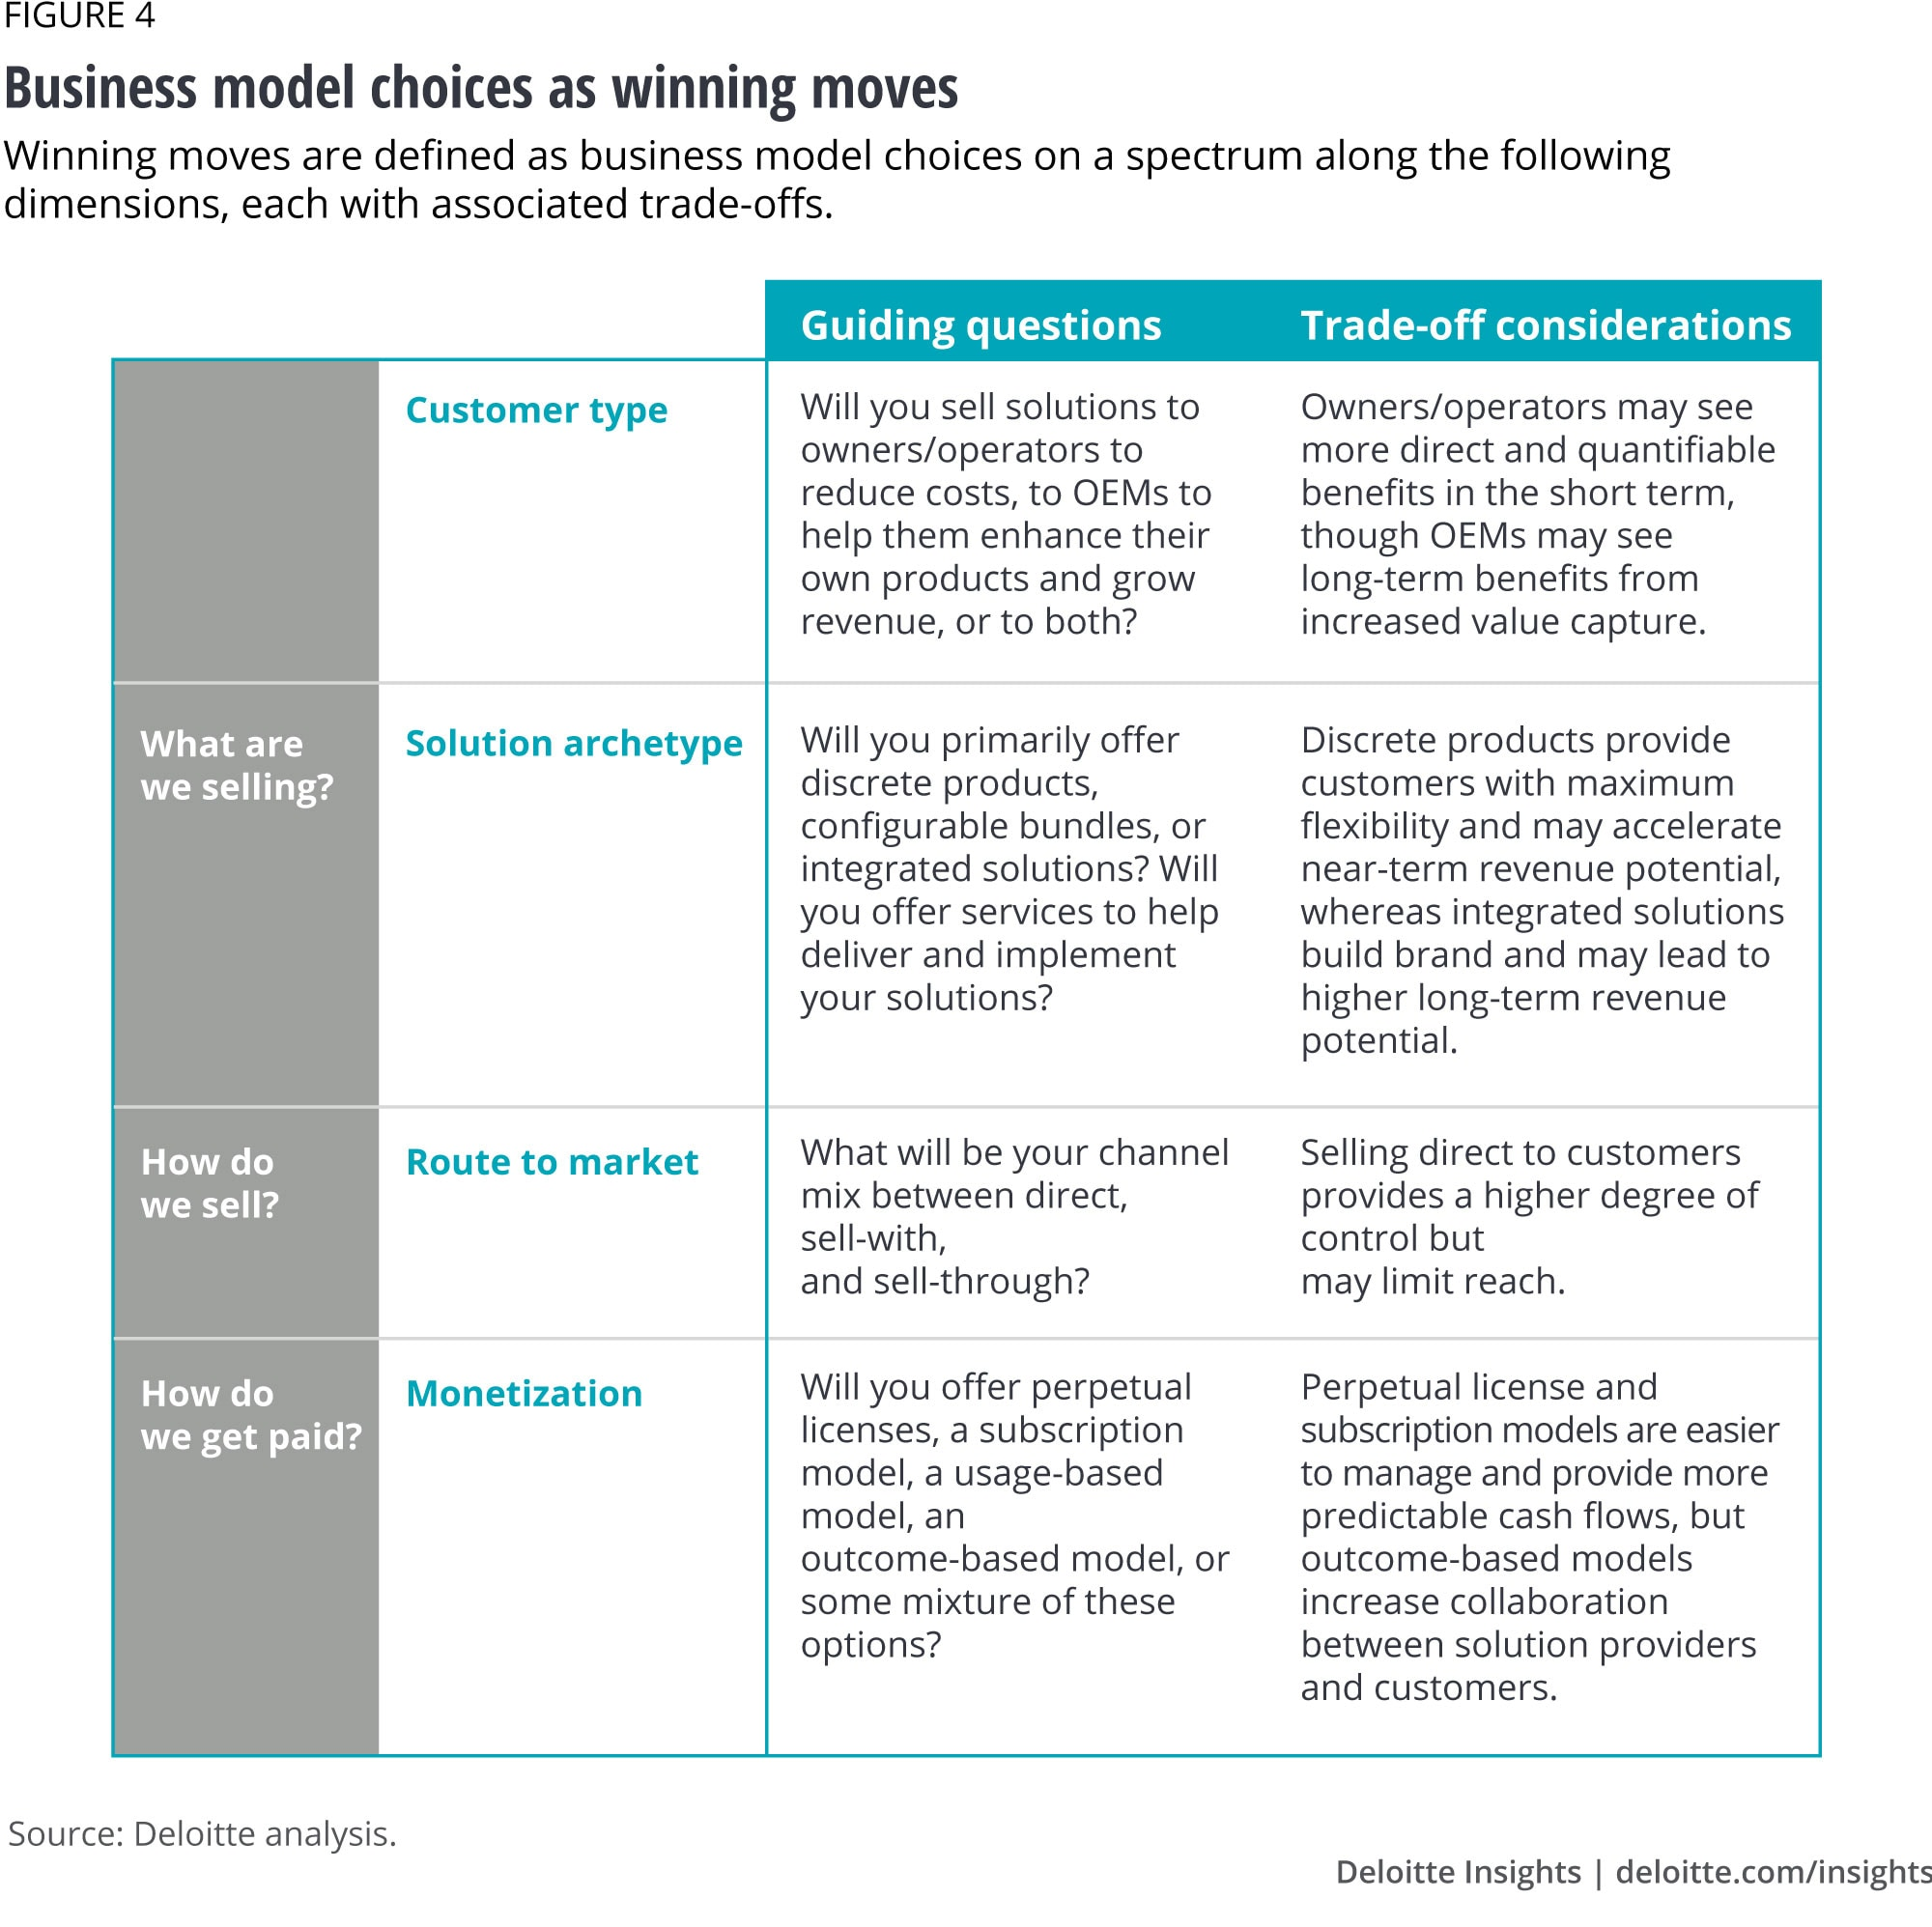 Figure 4. Business model choices as winning moves